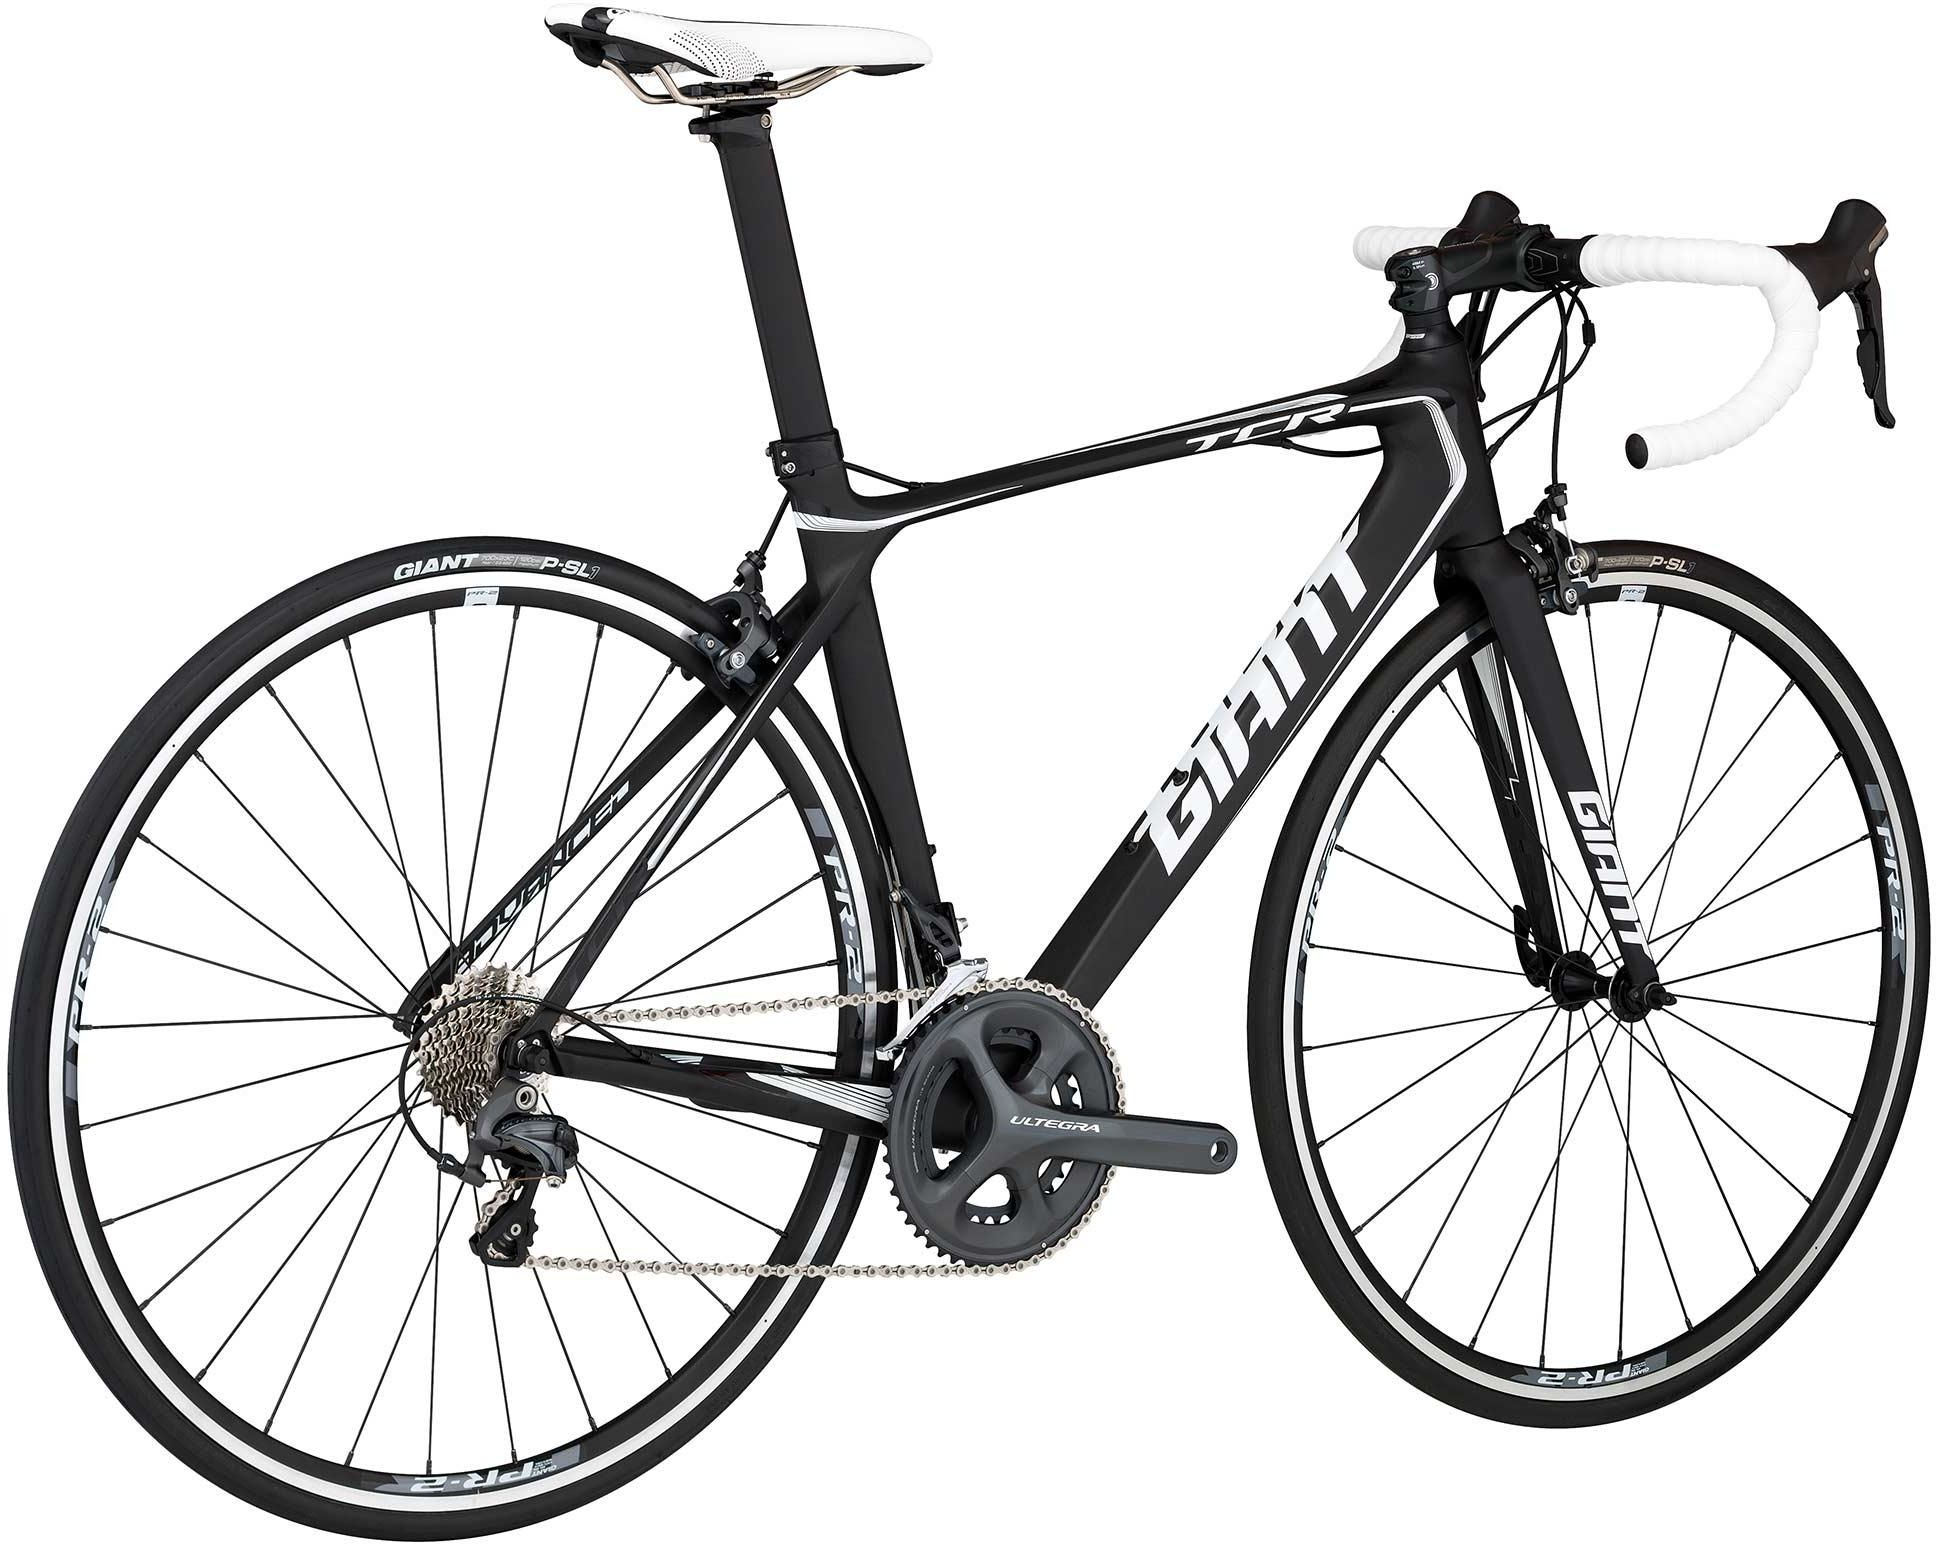 Giant Tcr Advanced 1 2015 Review The Bike List